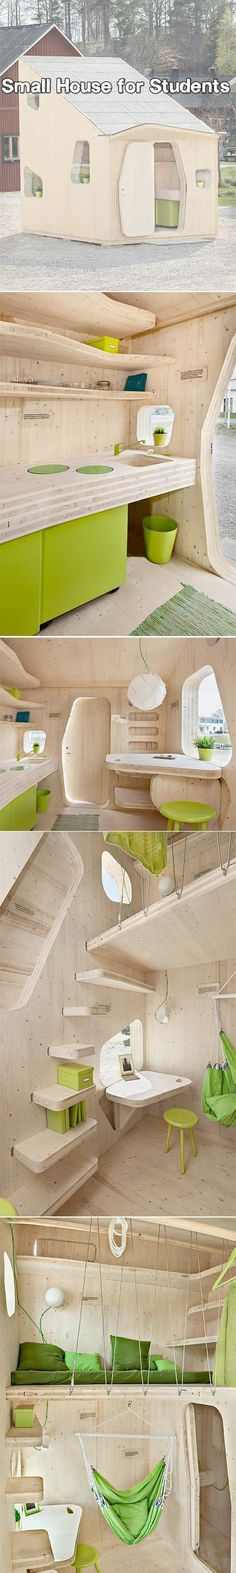 Cool And Small House For Students